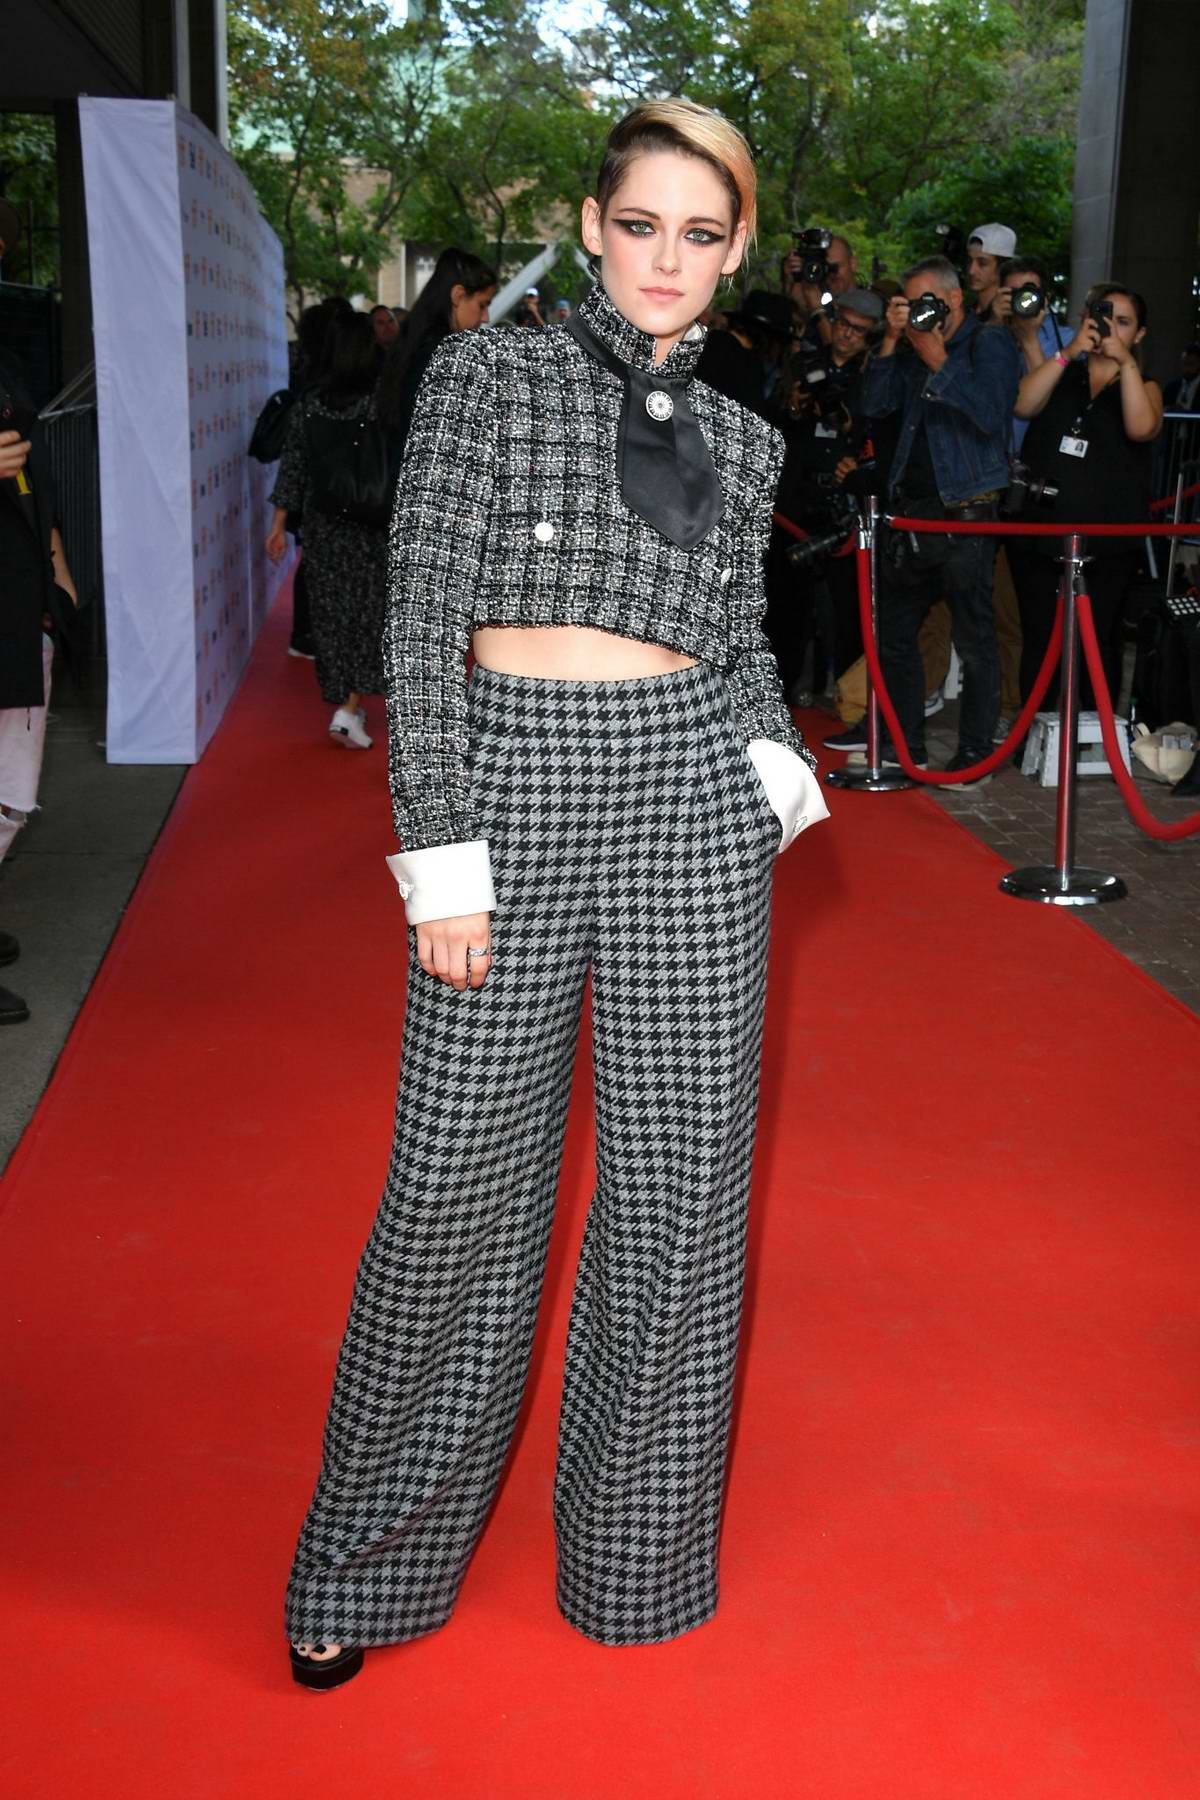 Kristen Stewart attends the premiere of 'Knives Out' during 2019 Toronto International Film Festival in Toronto, Canada